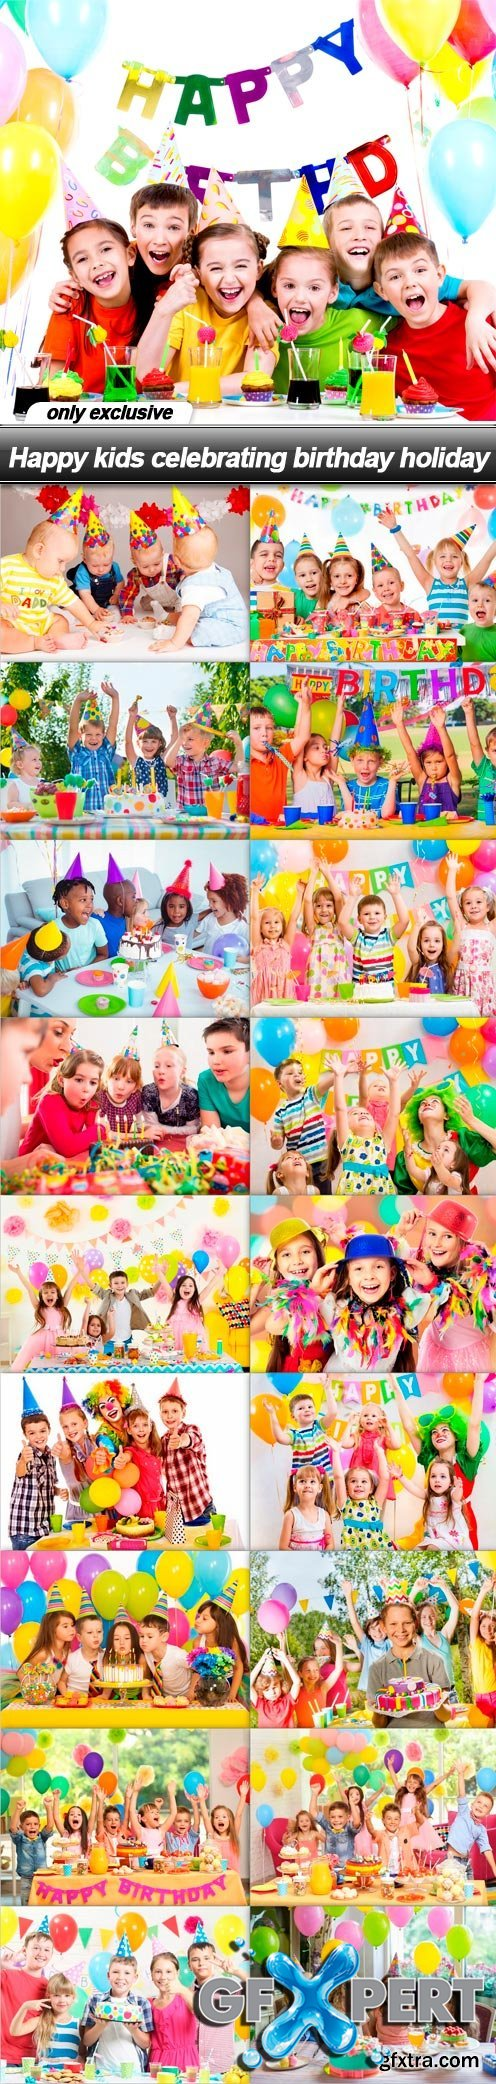 Happy kids celebrating birthday holiday - 19 UHQ JPEG